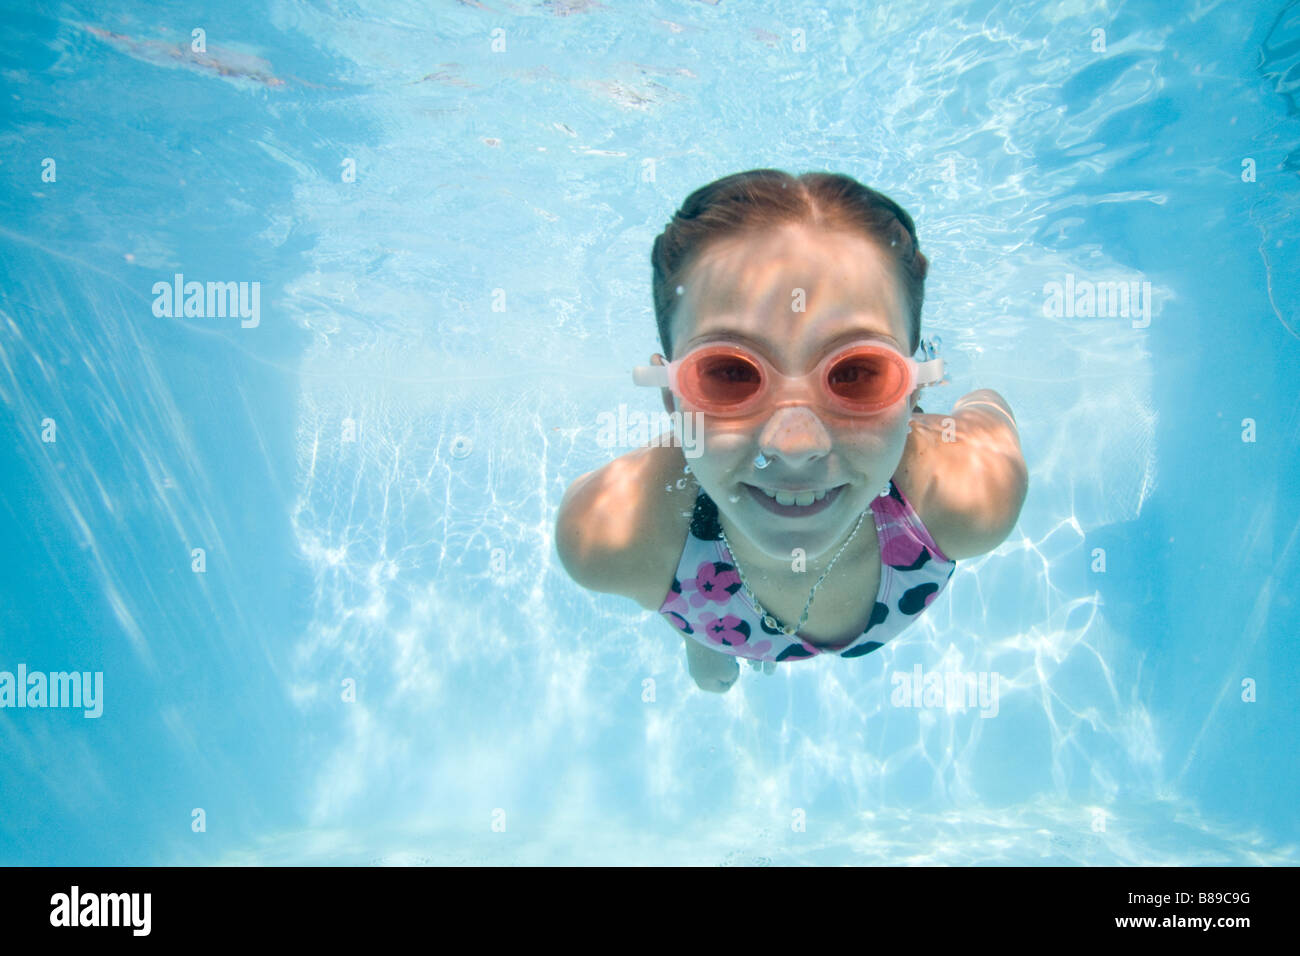 Girl swimming underwater Photo Stock